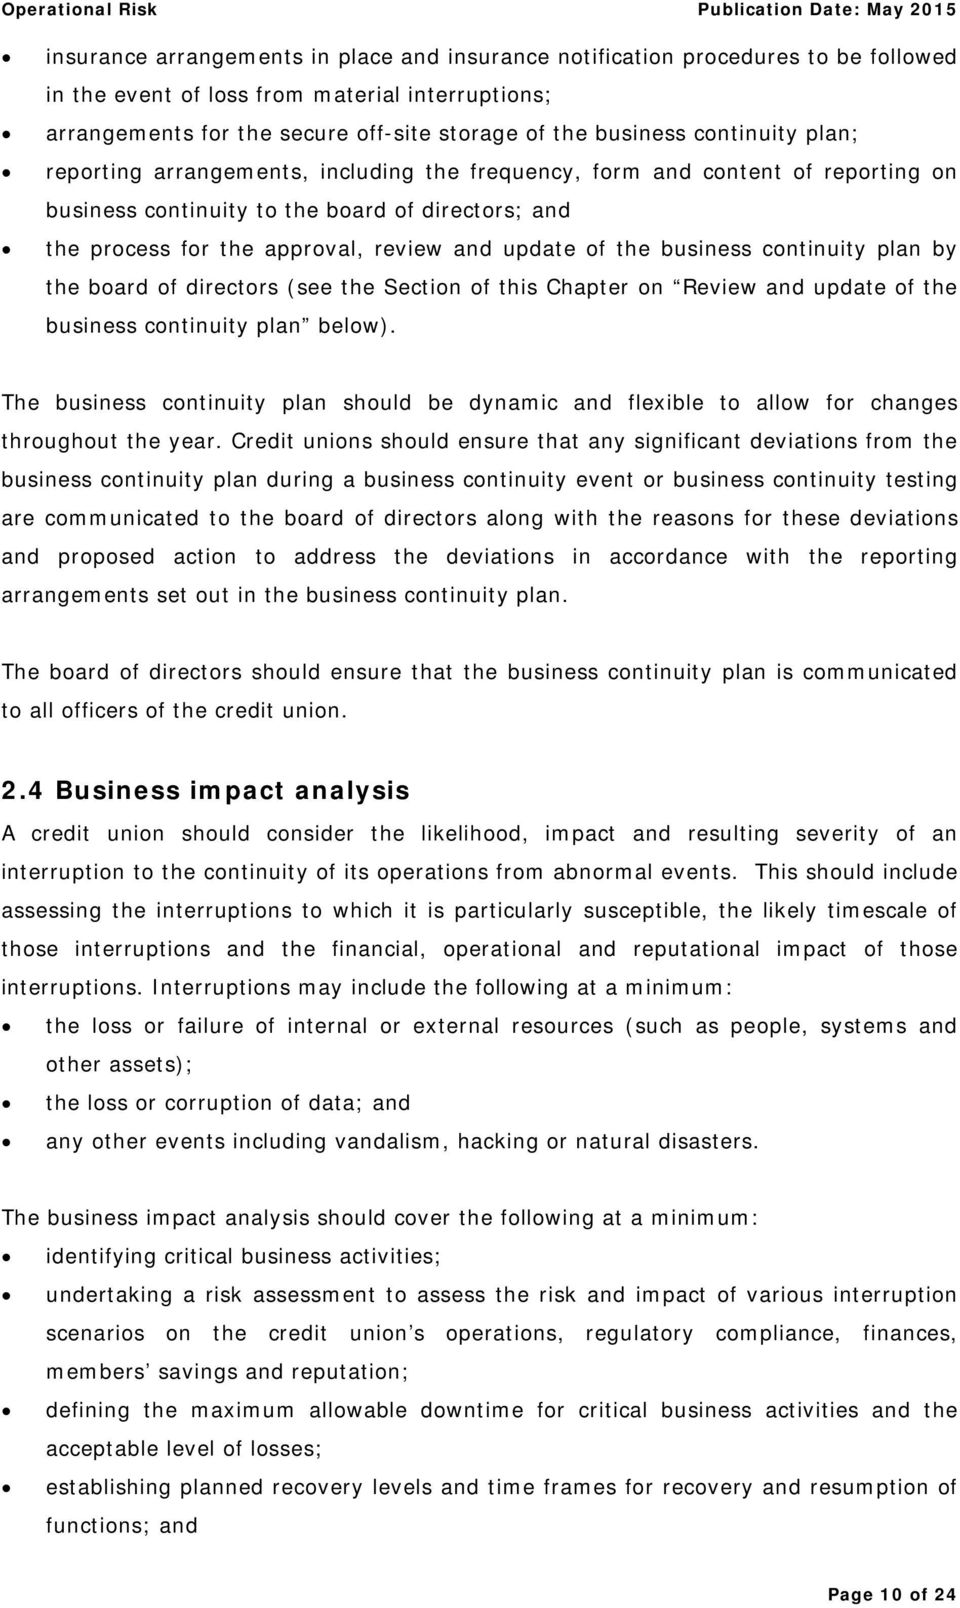 of the business continuity plan by the board of directors (see the Section of this Chapter on Review and update of the business continuity plan below).